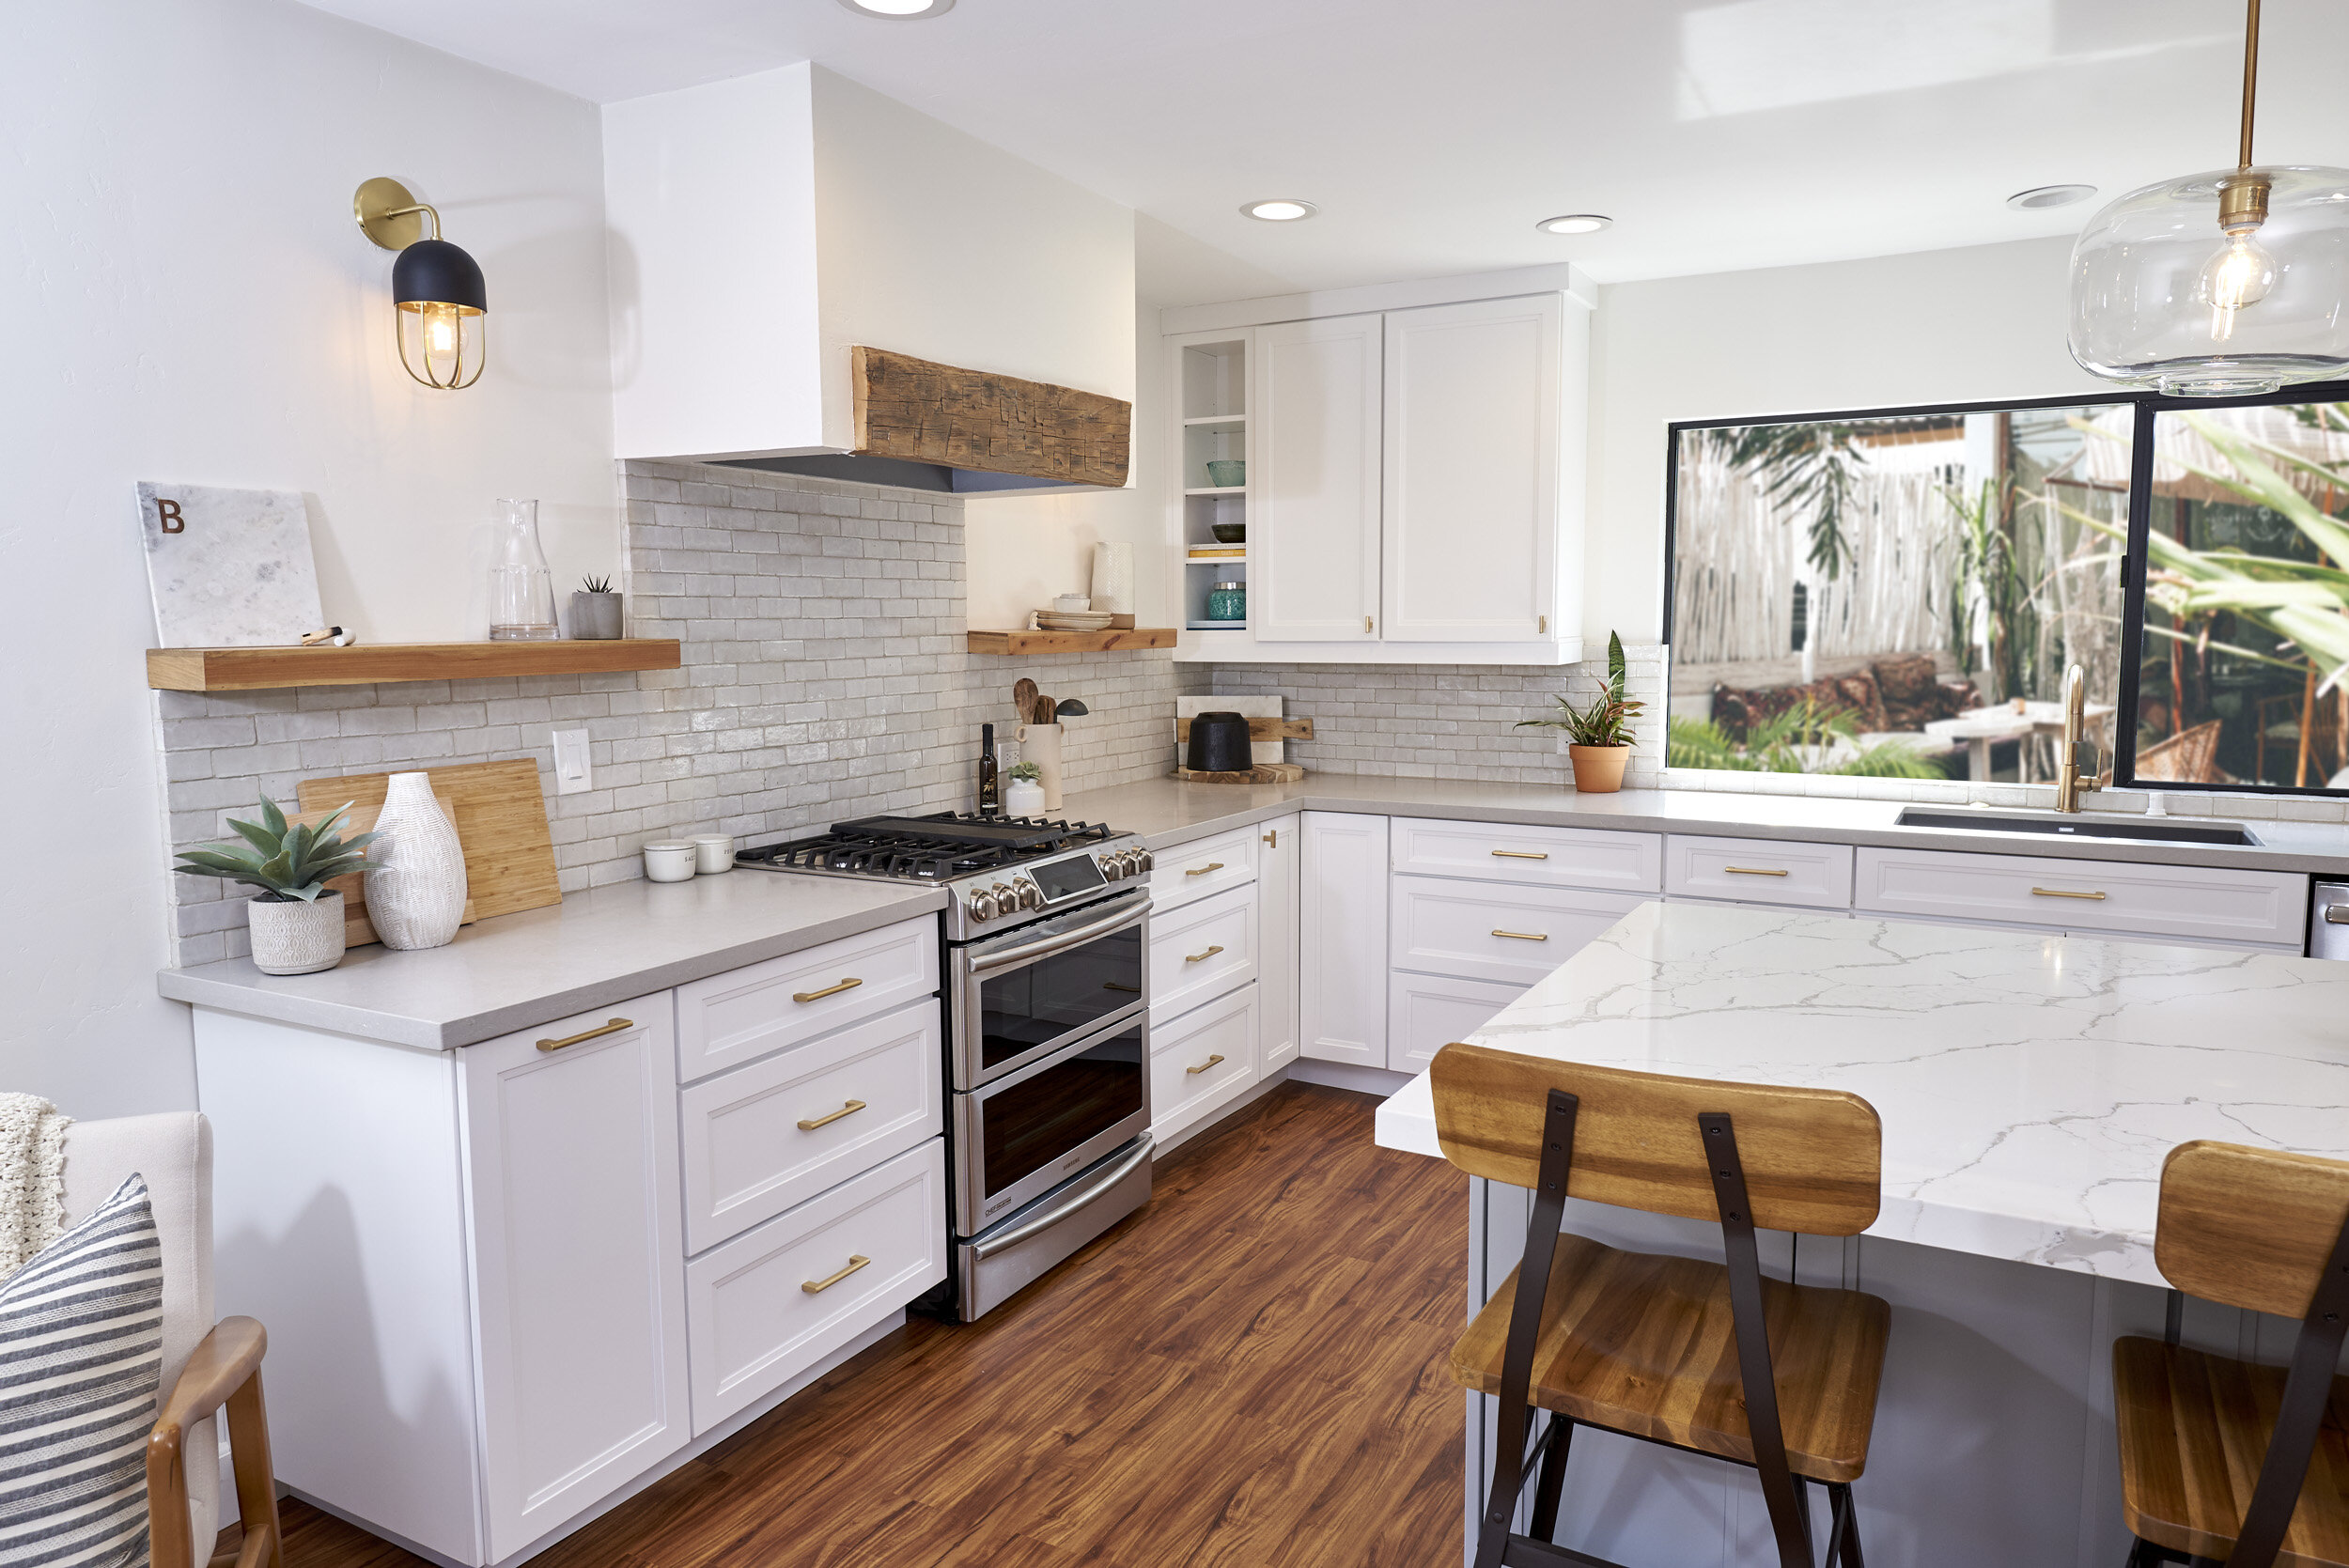 Modern Farmhouse Kitchen Remodel for first time home buyer